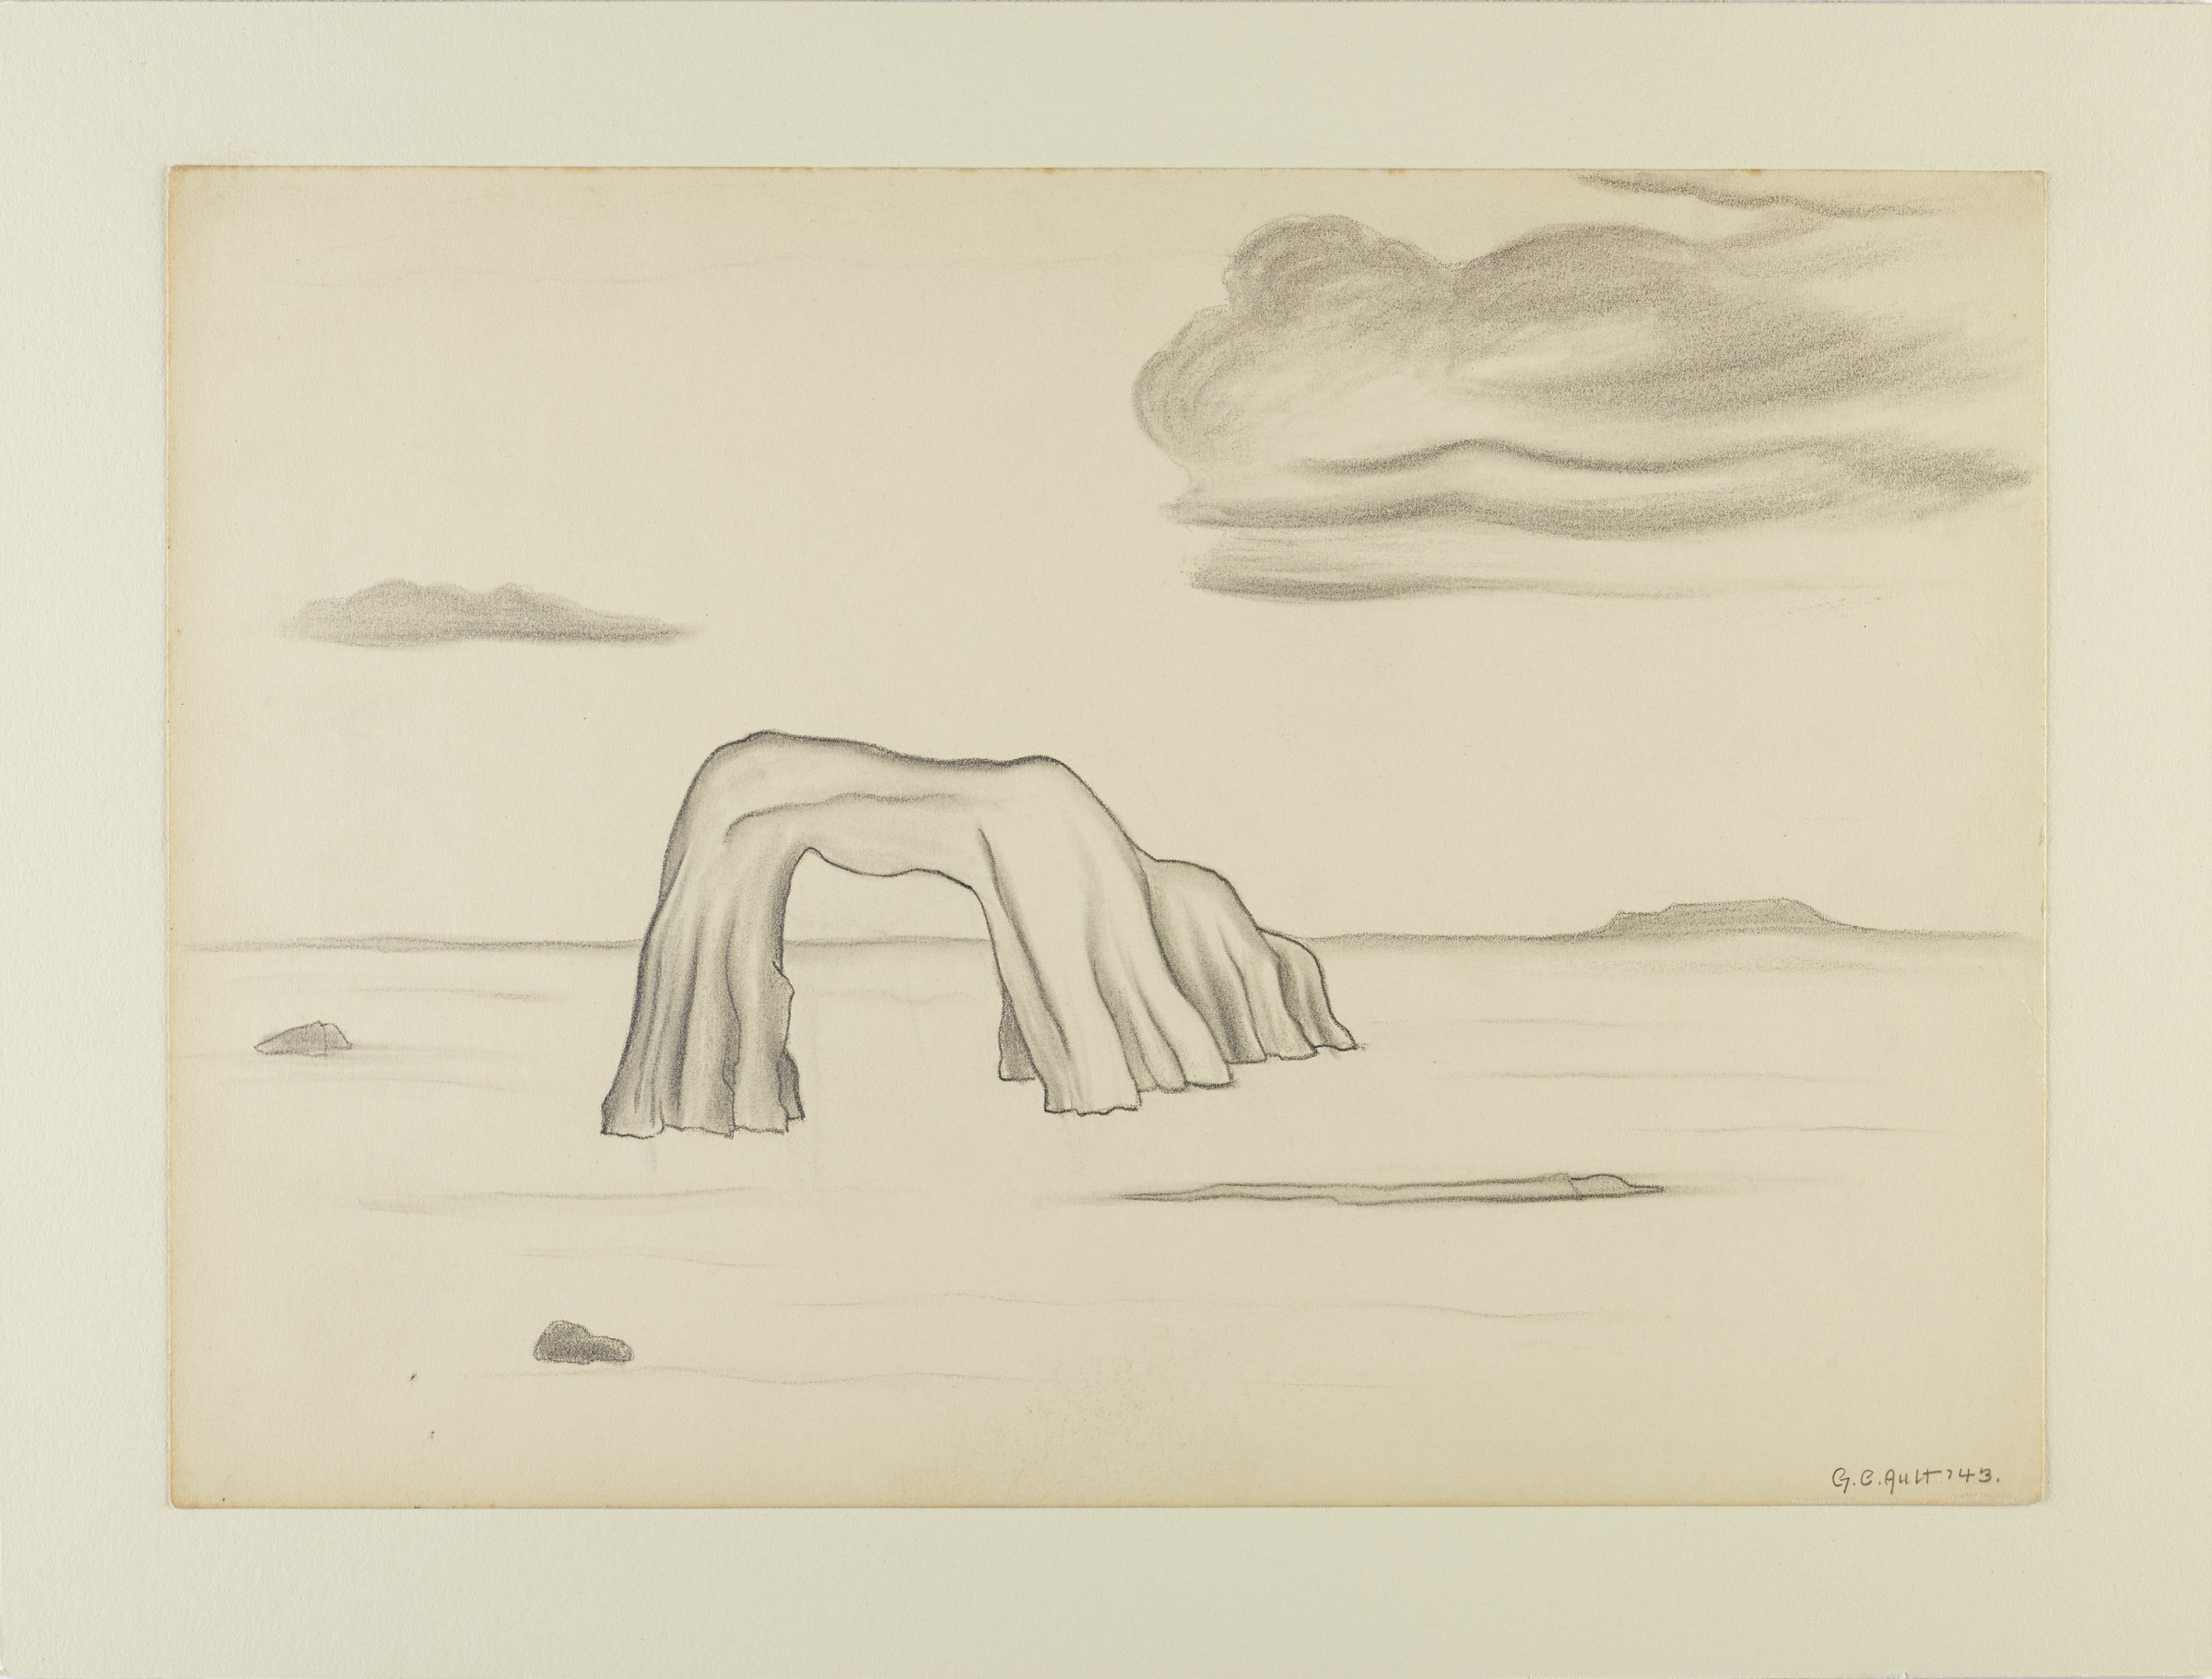 This drawing represents a rock arch in an otherwise flat, empty landscape in graphite on paper. Above a distant, flat horizon float two clouds, one small at the left of the sheet and one larger at the right of the sheet.